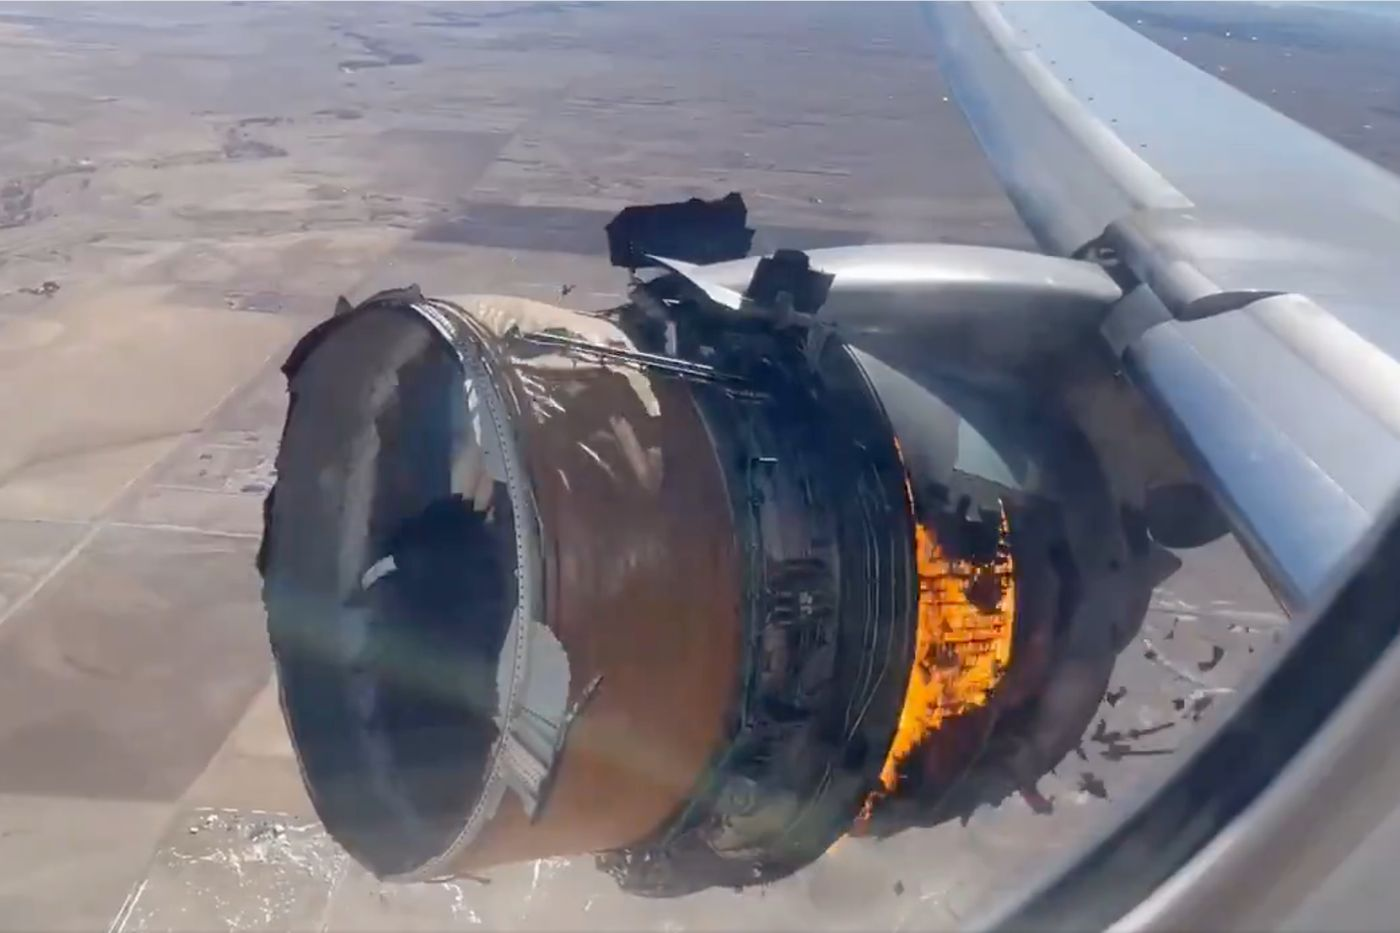 Terrifying viral video shows airplane engine on fire while still in the air